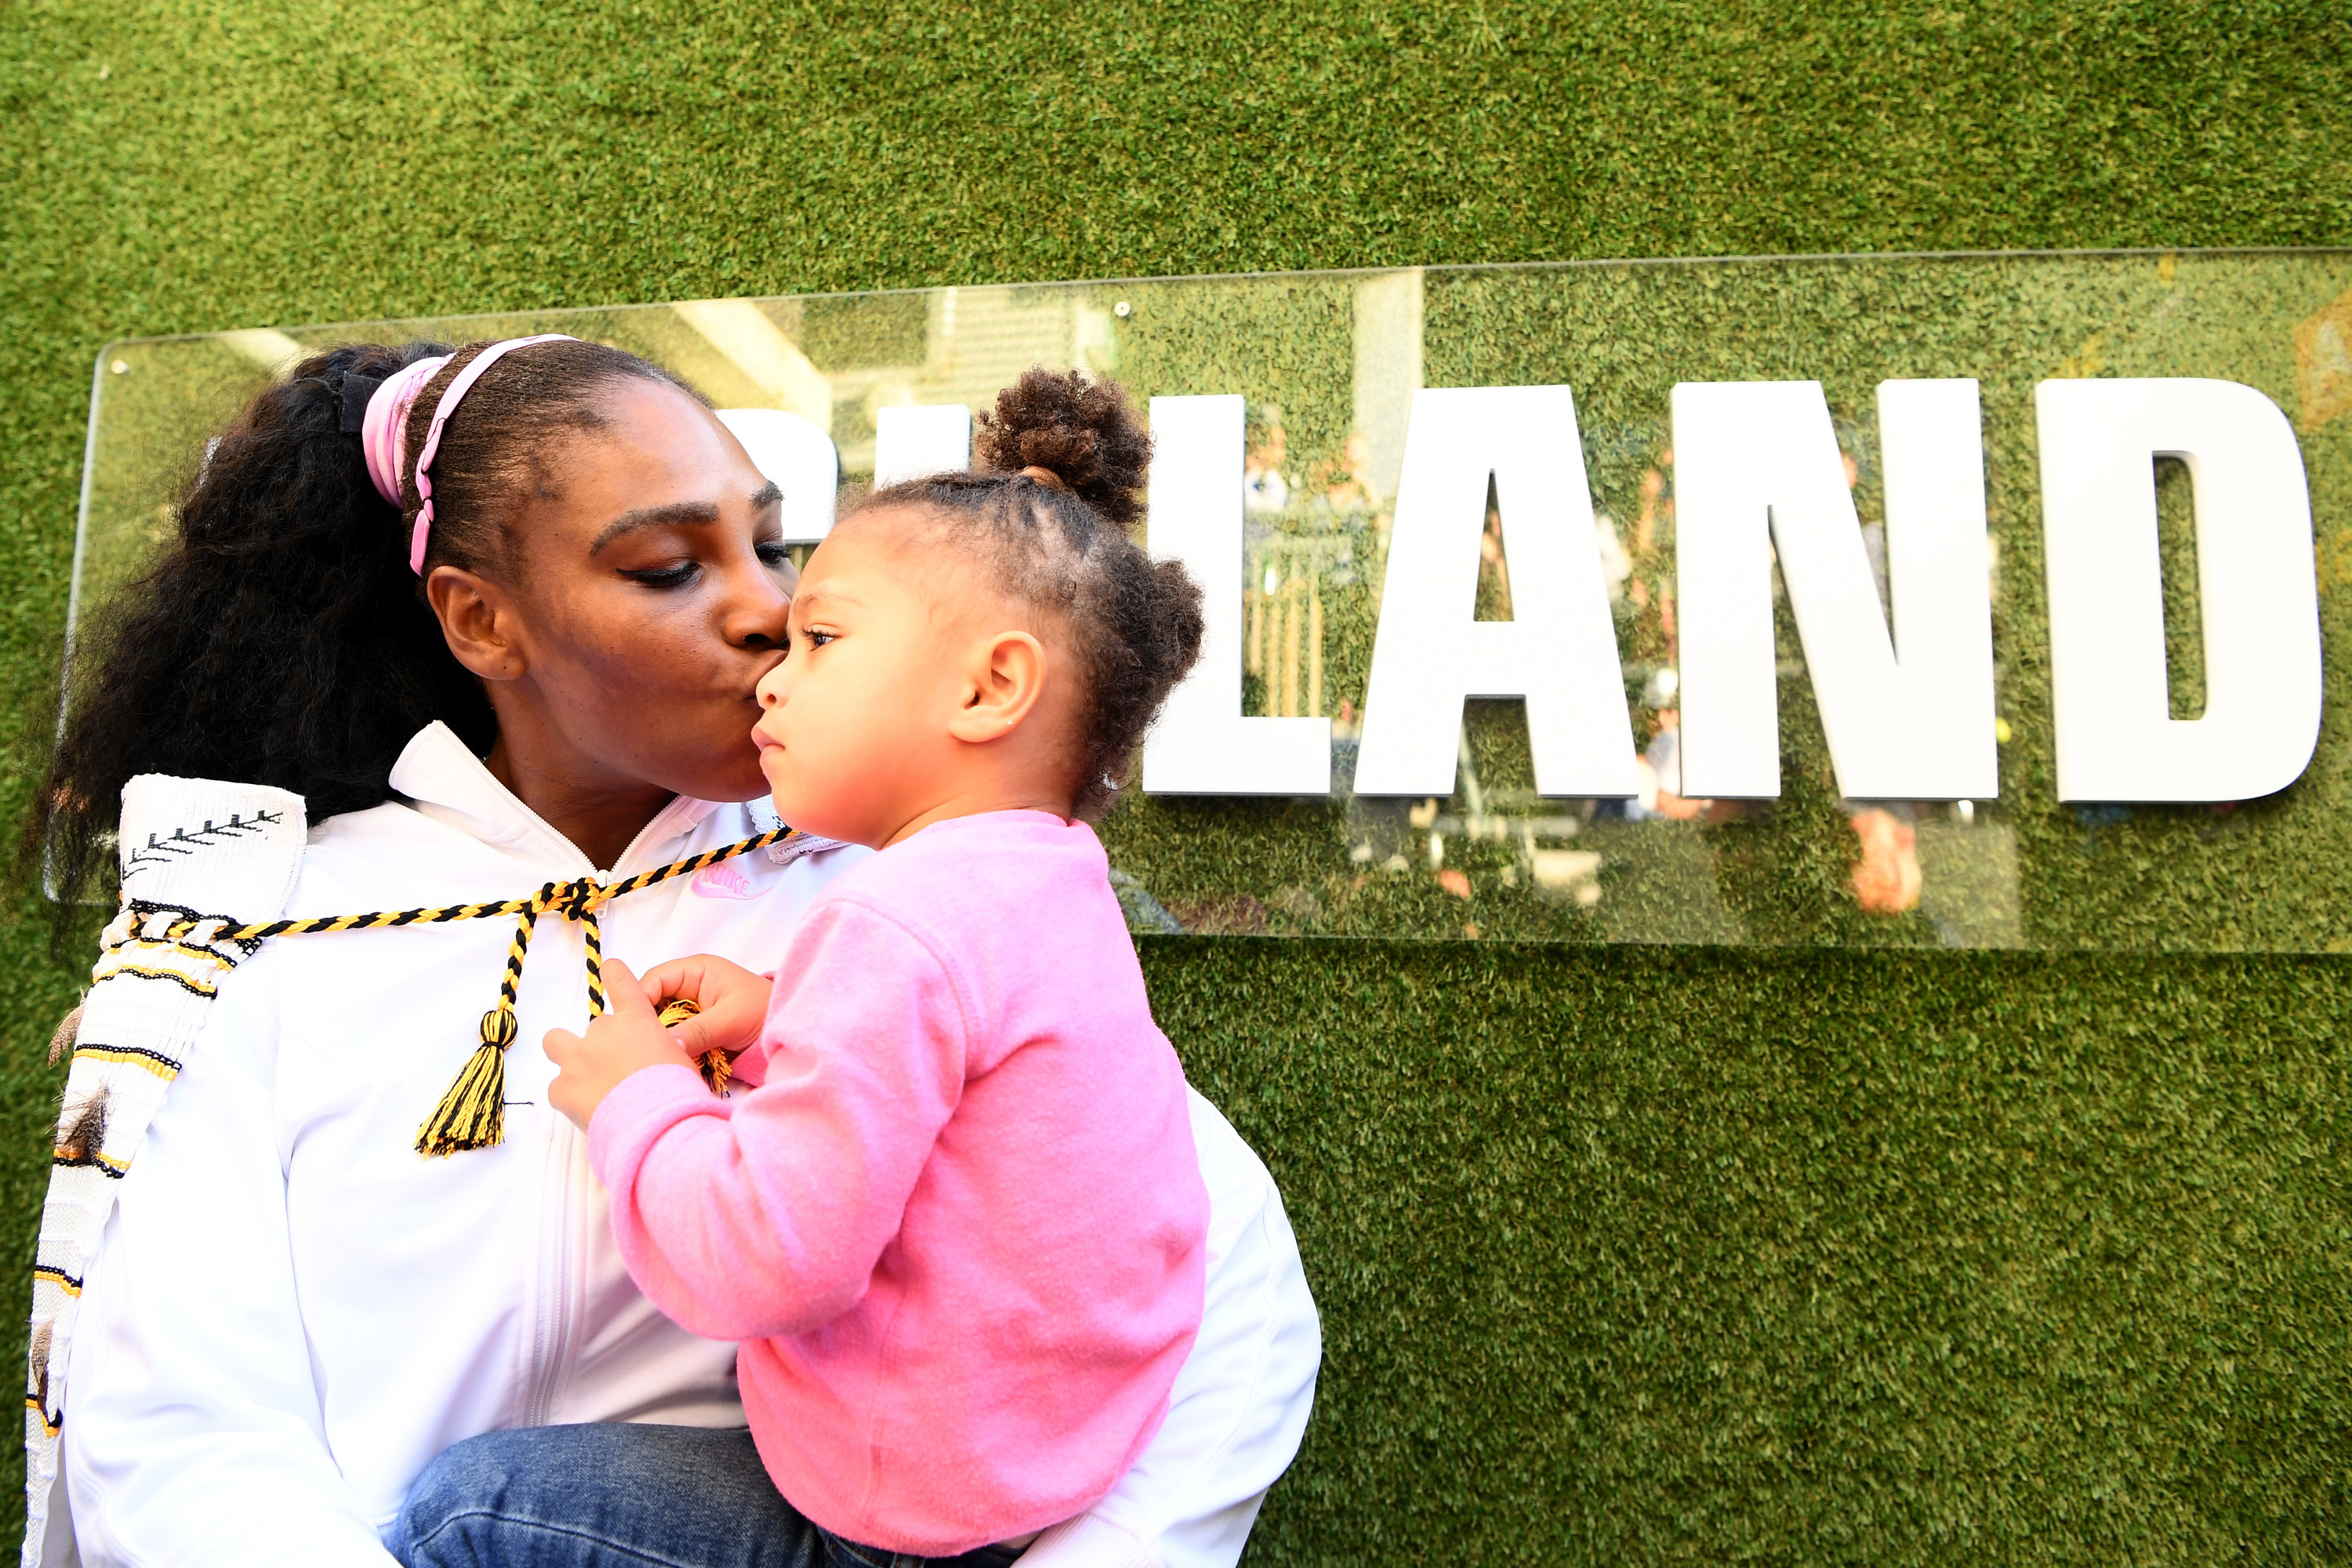 Serena kissing Olympia at the Auckland tennis tournament